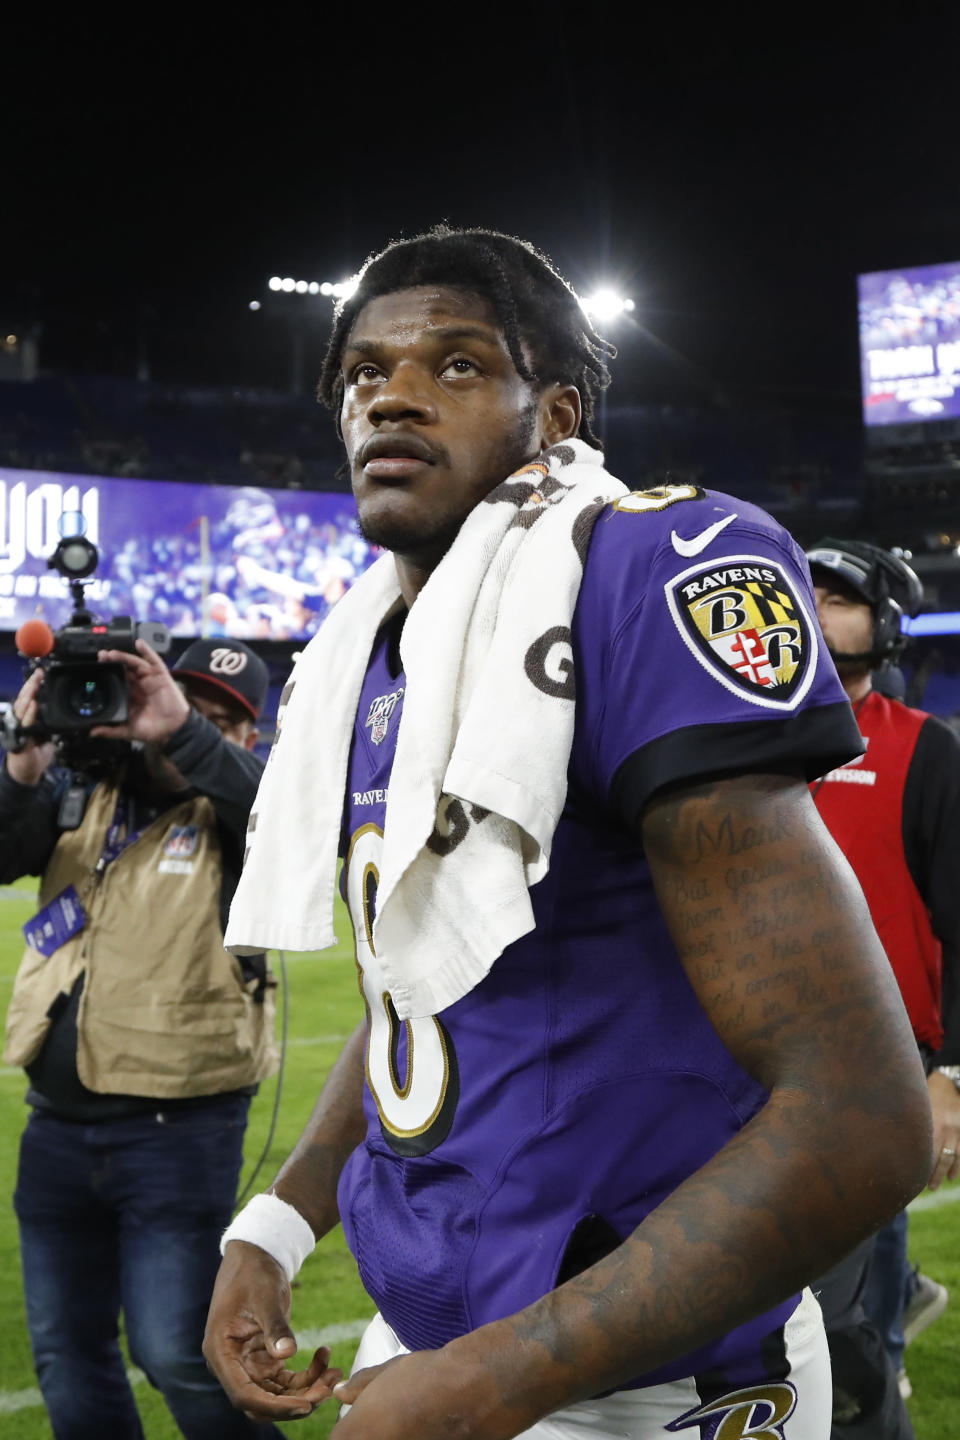 Baltimore Ravens quarterback Lamar Jackson leaves the field after an NFL divisional playoff football game against the Tennessee Titans, Saturday, Jan. 11, 2020, in Baltimore. The Titans won 28-12. (AP Photo/Julio Cortez)